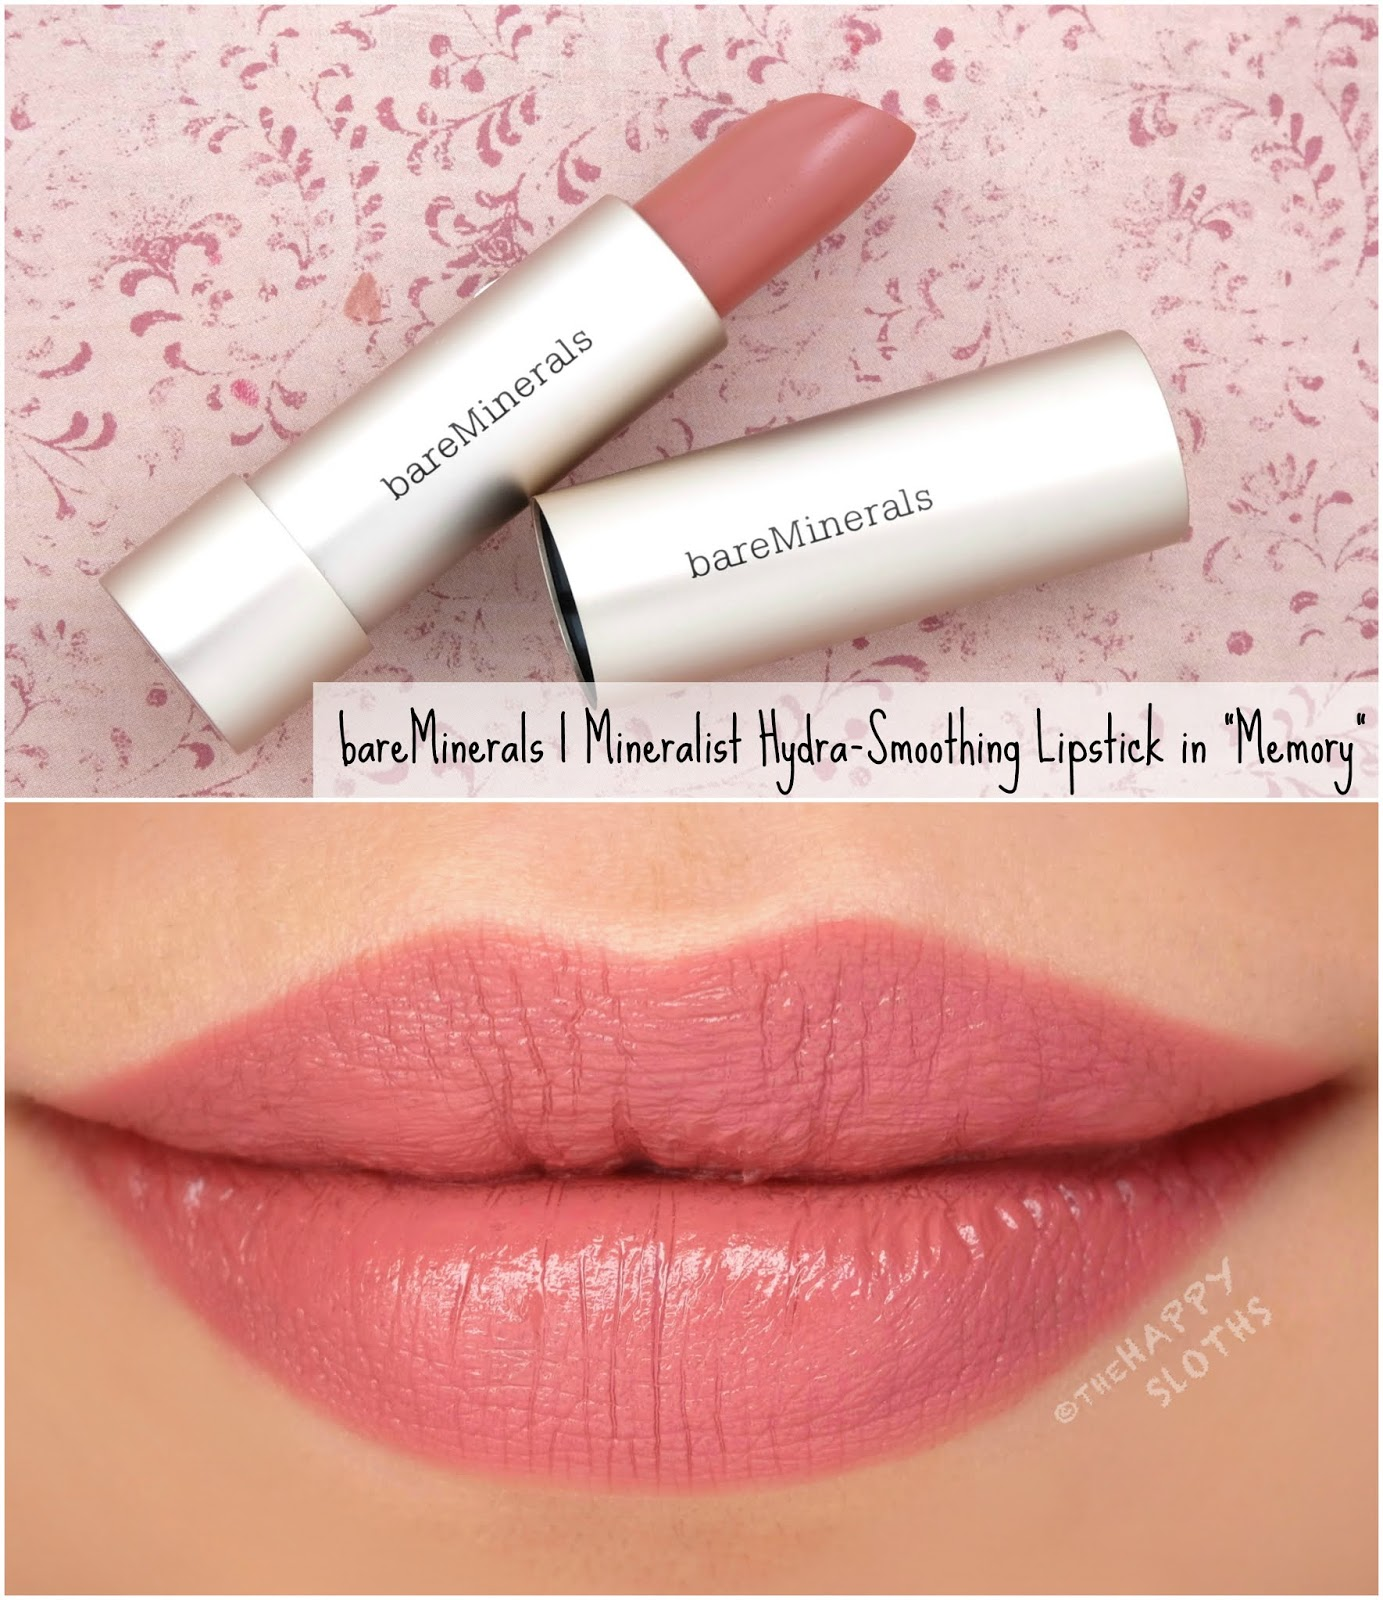 "bareMinerals | Mineralist Hydra-Smoothing Lipstick in ""Memory"": Review and Swatches"